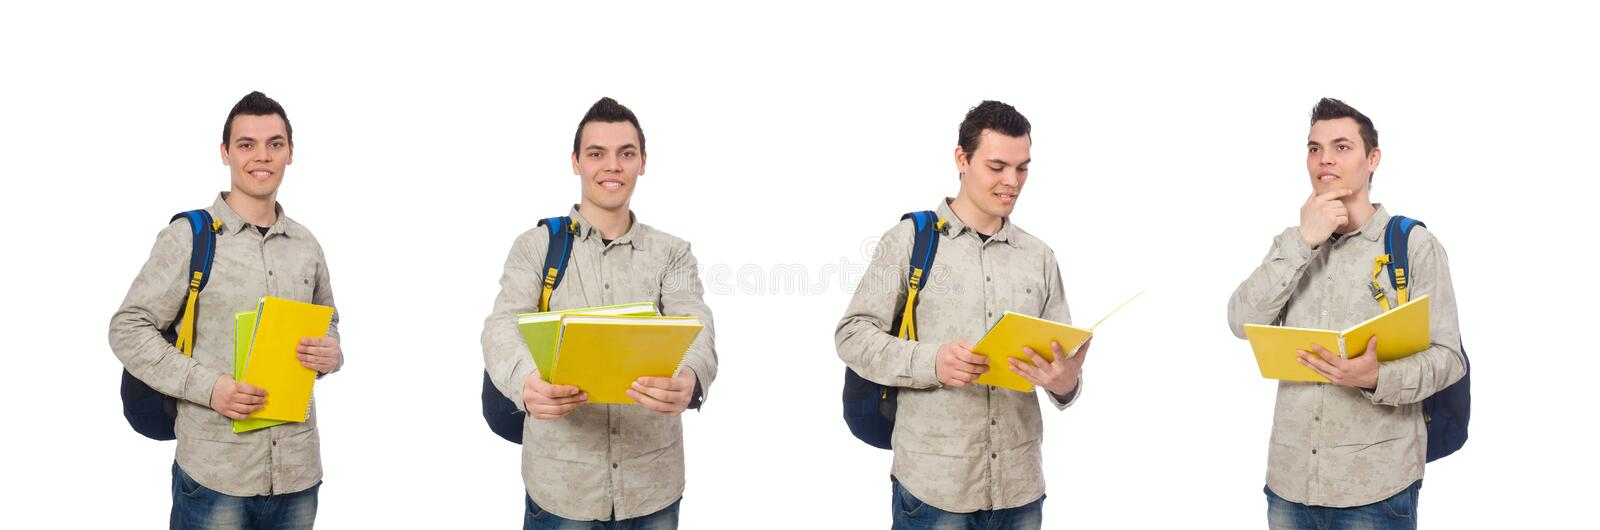 The smiling caucasian student with backpack isolated on white royalty free stock photos